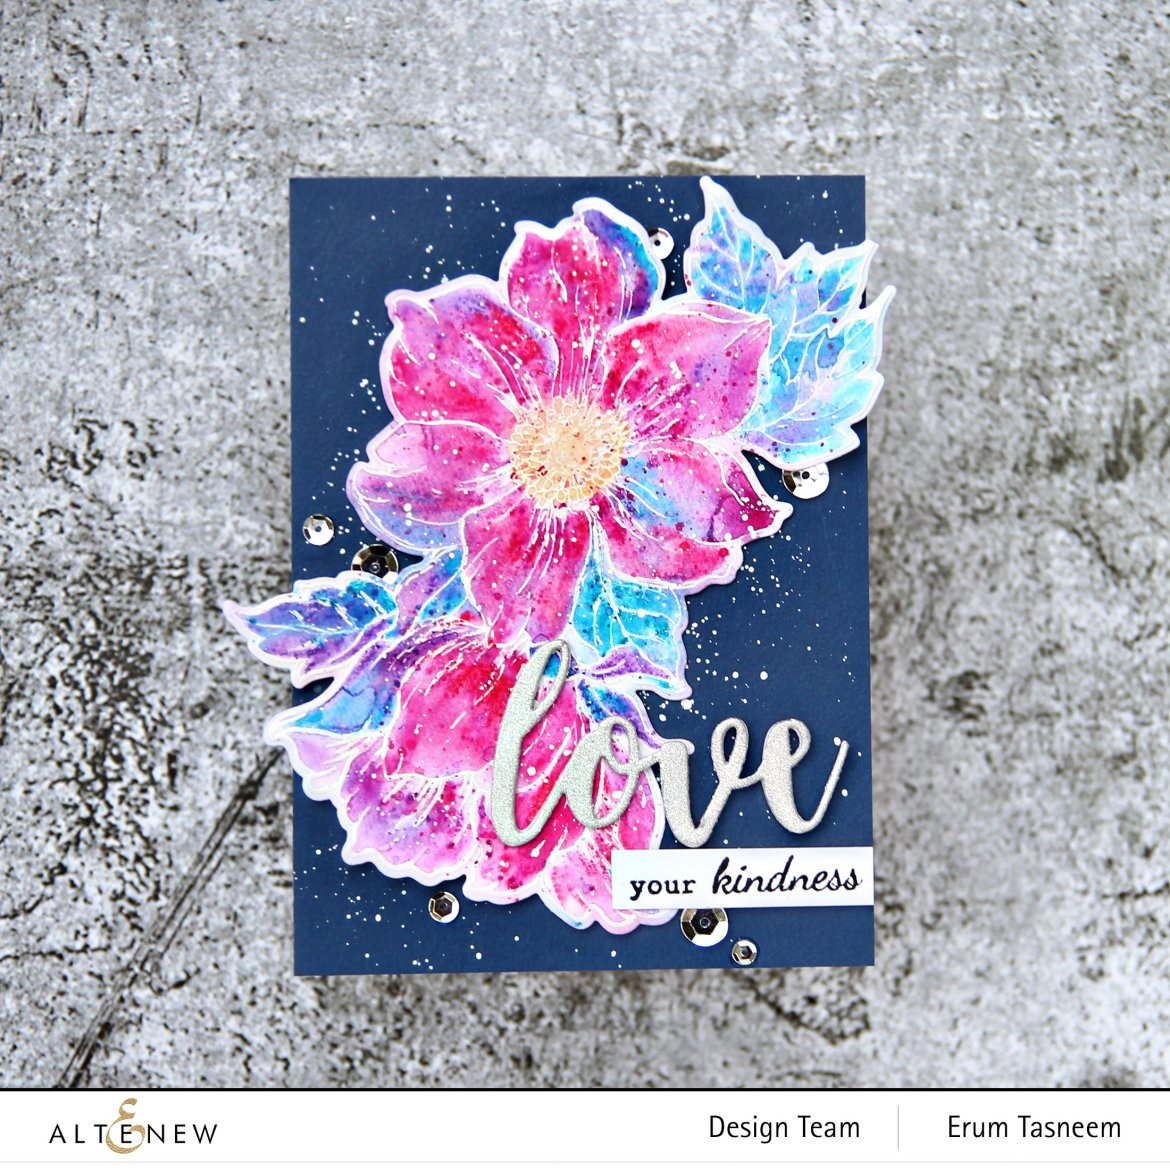 Altenew Woodless Watercolor Pencils and Statement Flowers Stamp Set | Erum Tasneem | @pr0digy0